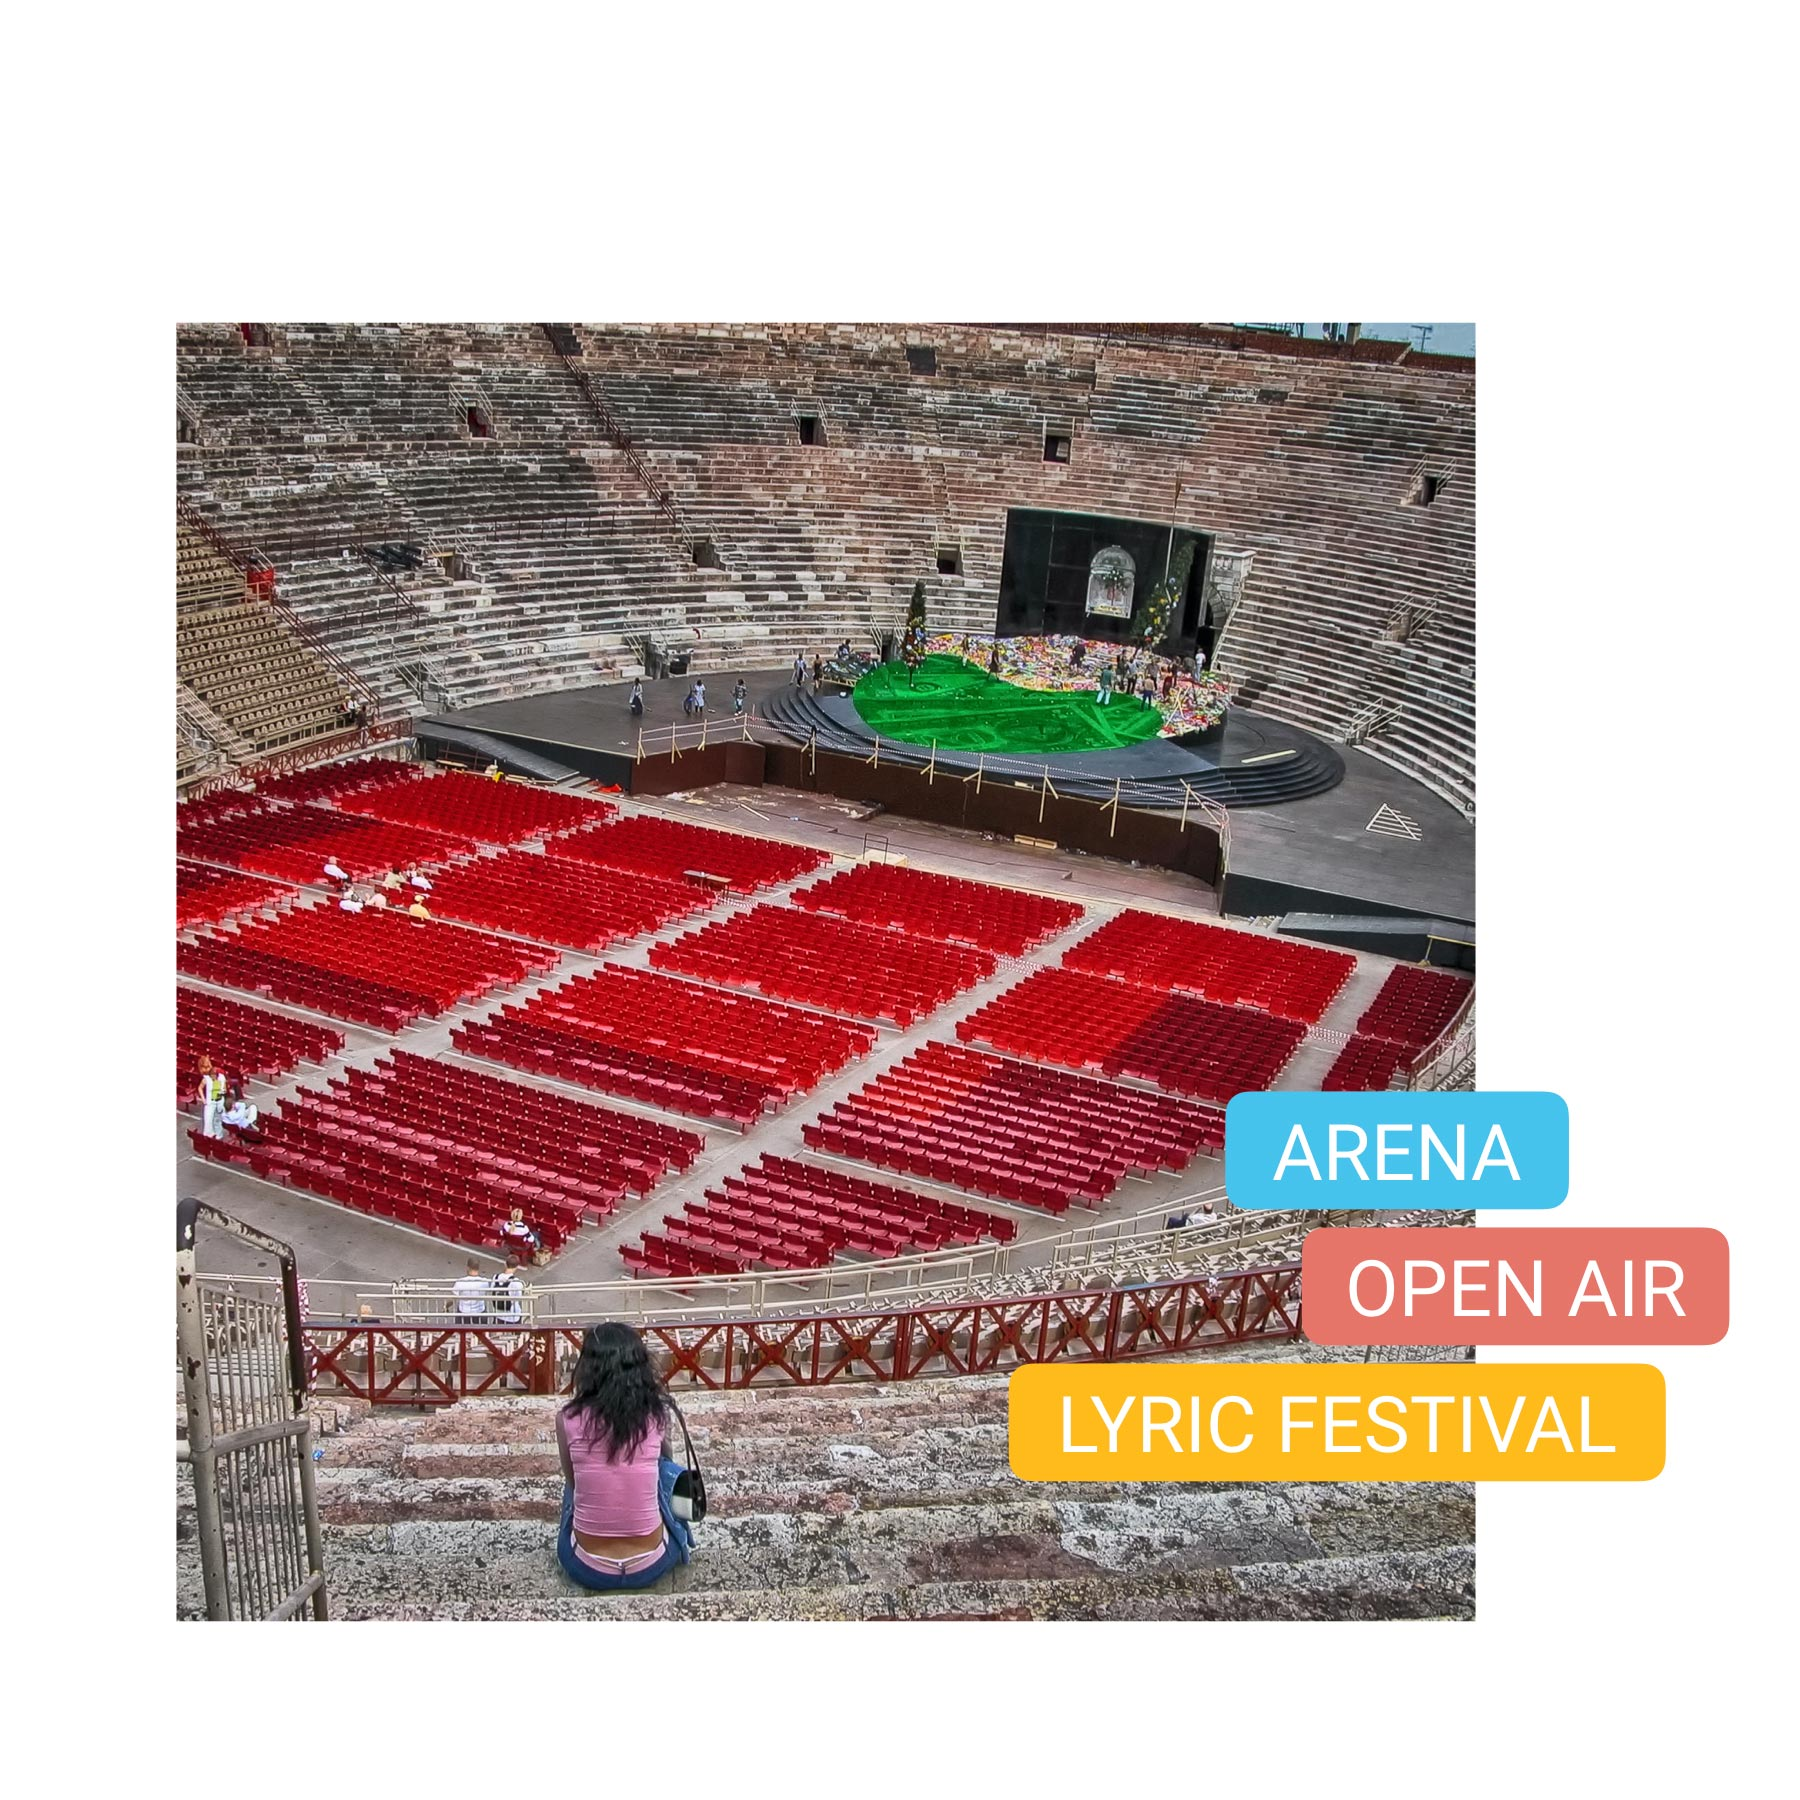 the-marvellous-verona-arena-bike-tour